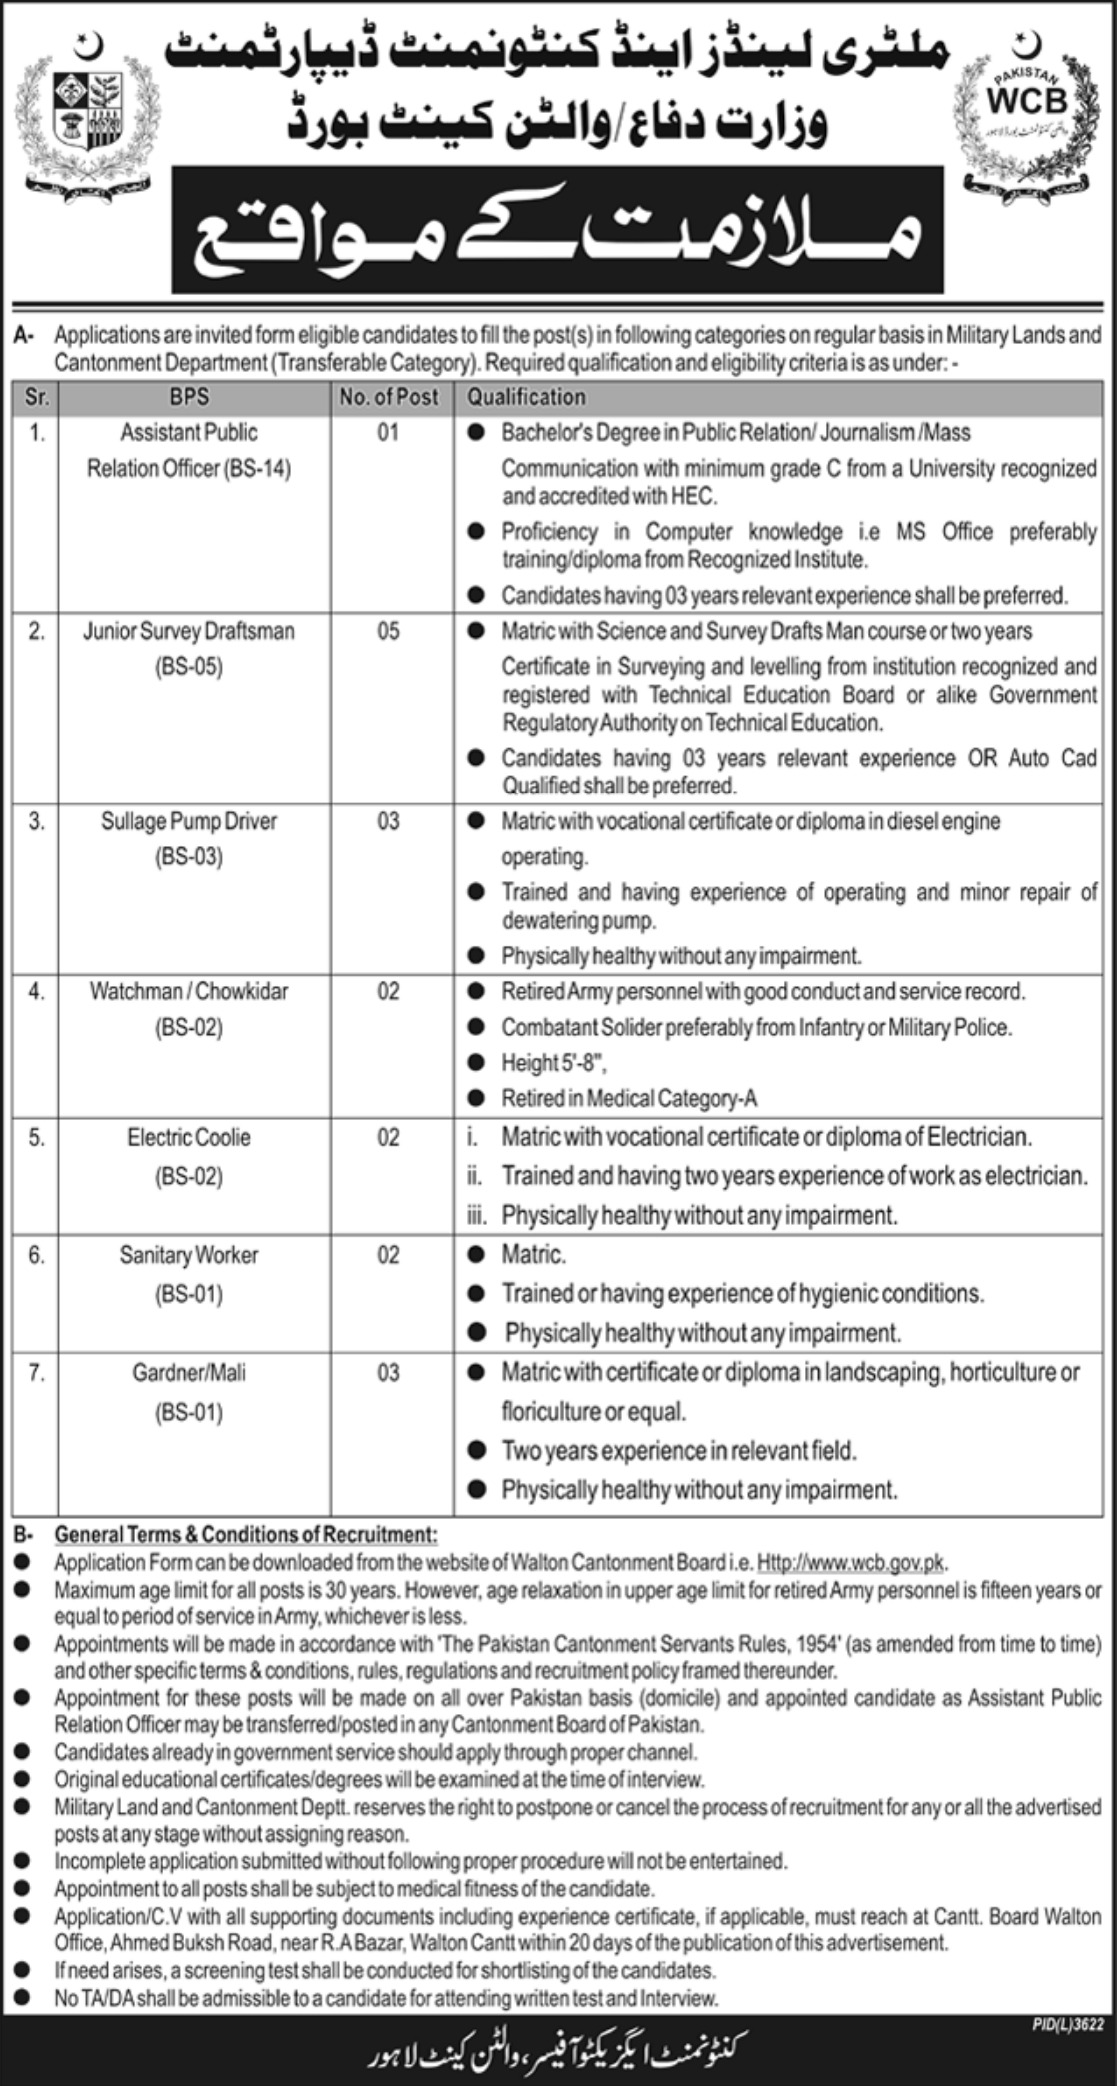 Military Lands & Cantonment Department Walton Cantt Lahore Jobs 2019 Ministry of Defence